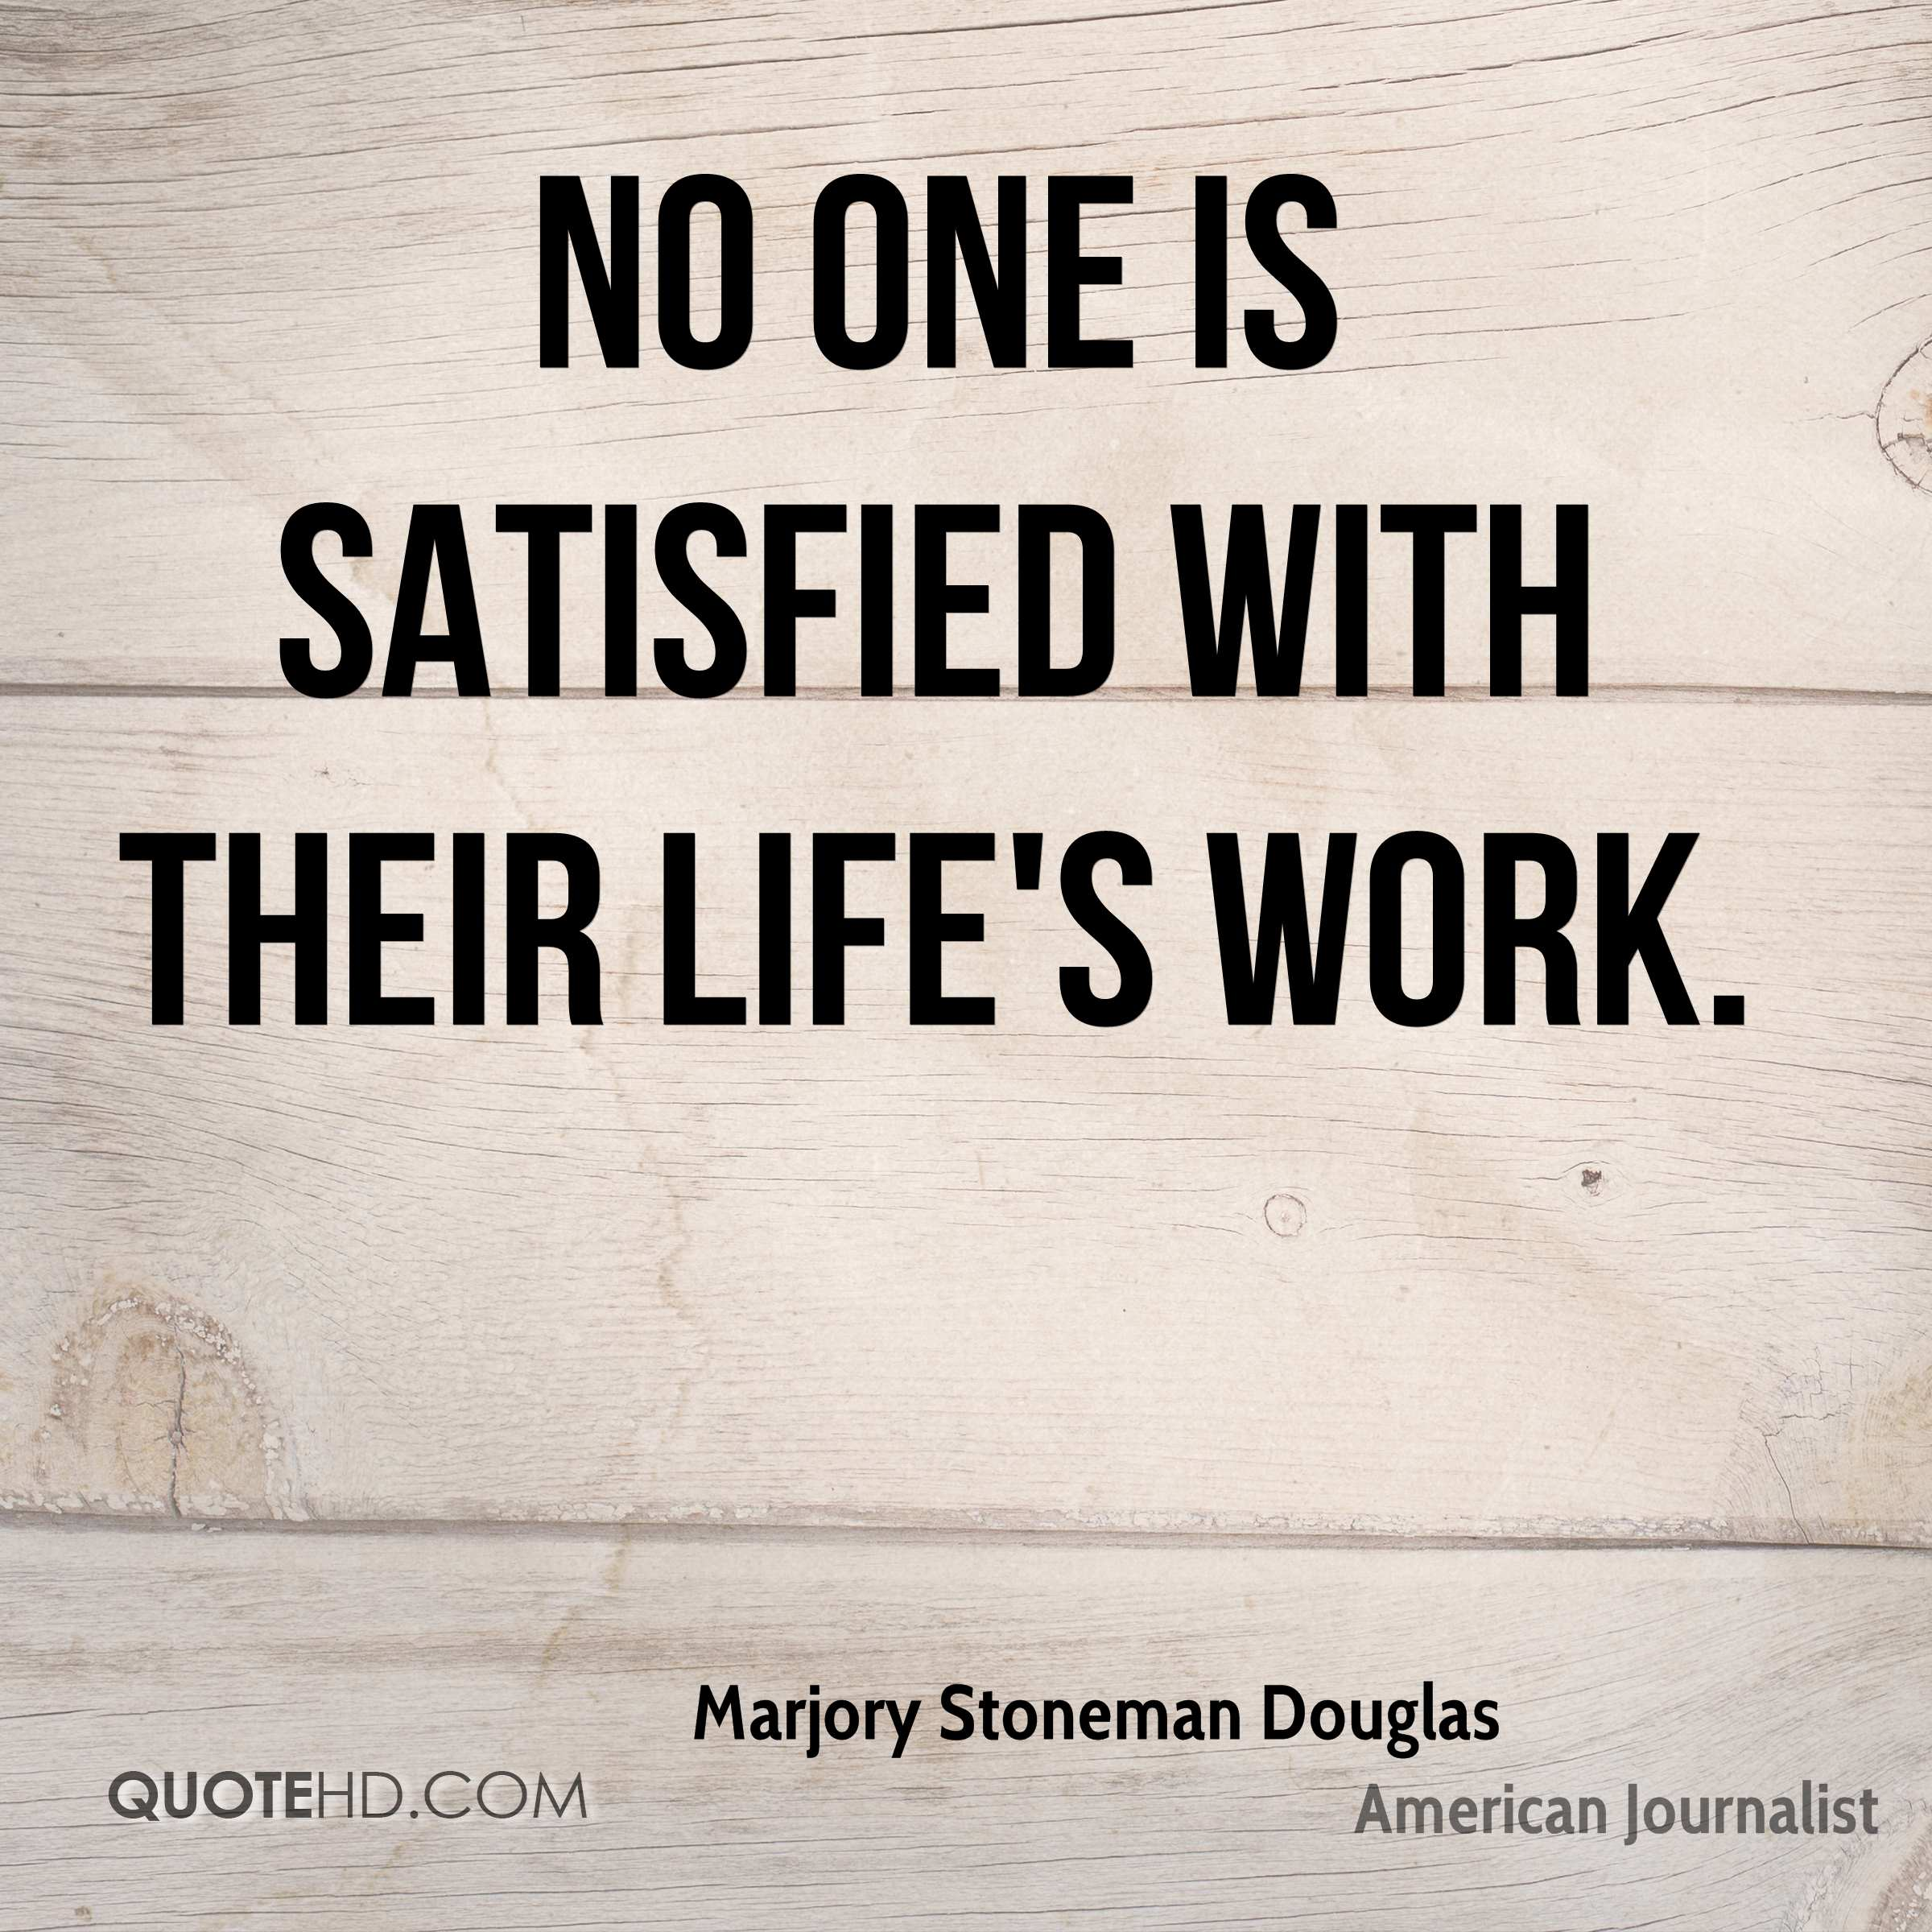 No one is satisfied with their life's work.